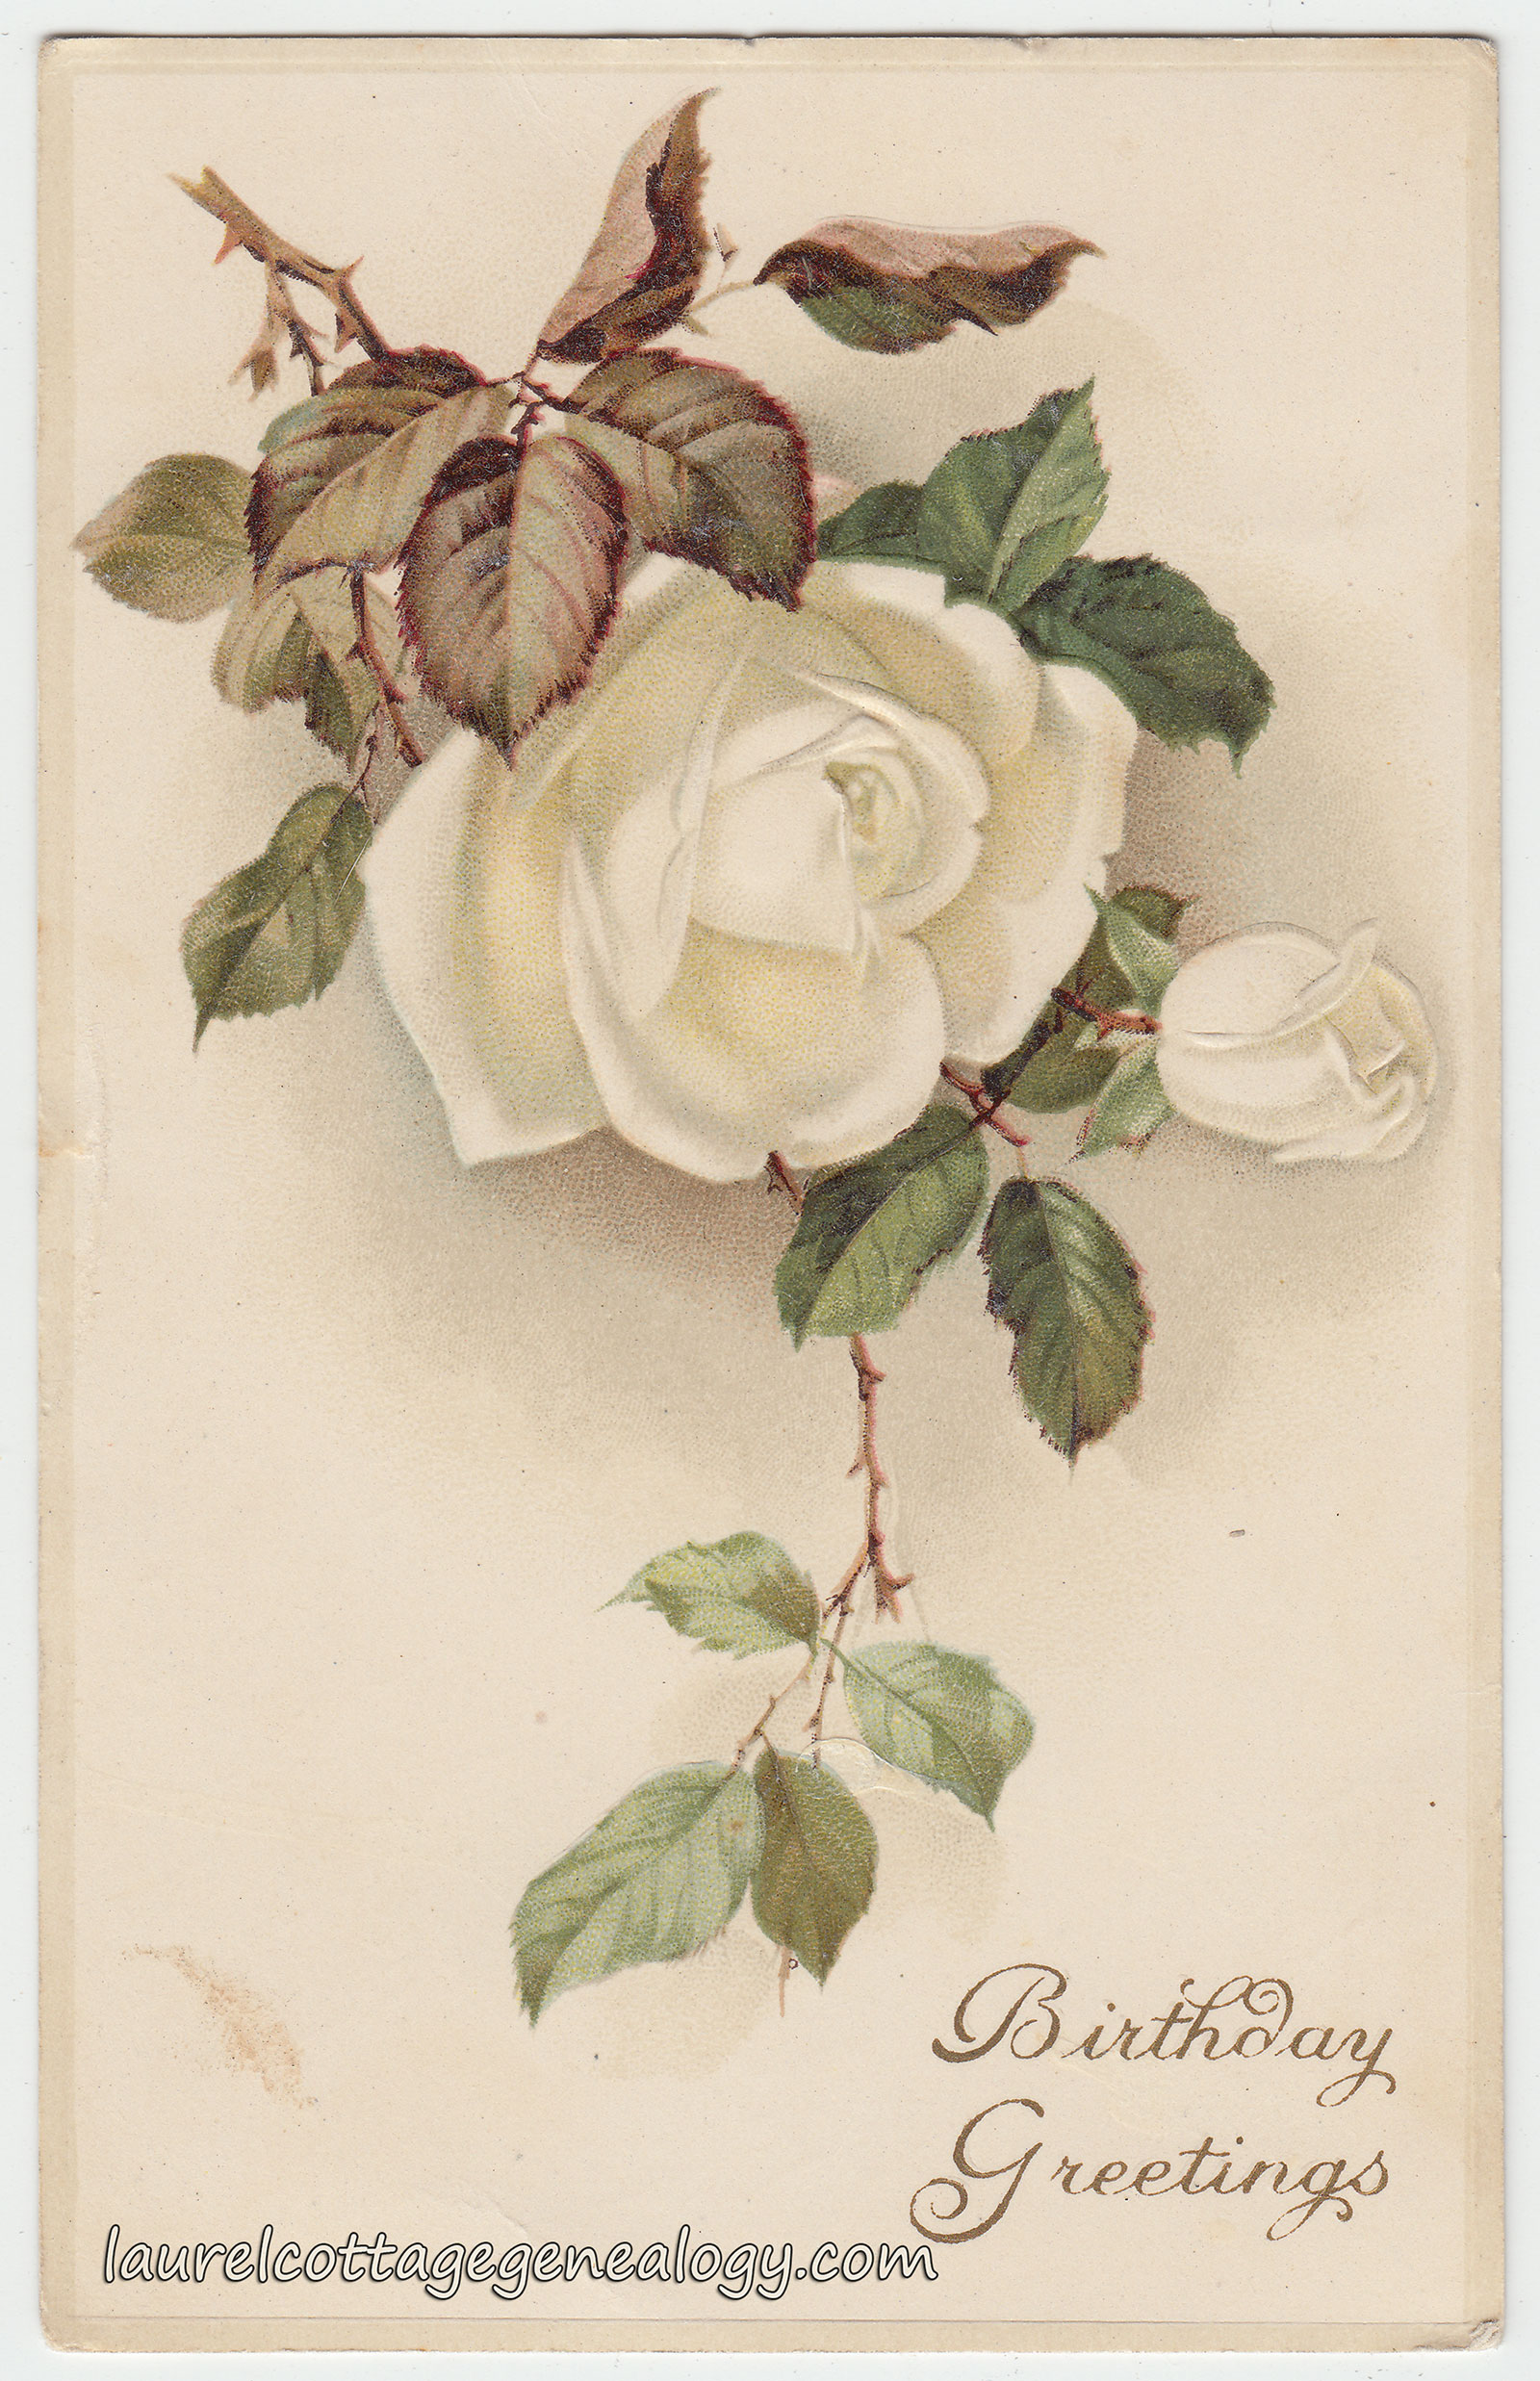 White Rose Birthday Greetings Laurel Cottage Genealogy